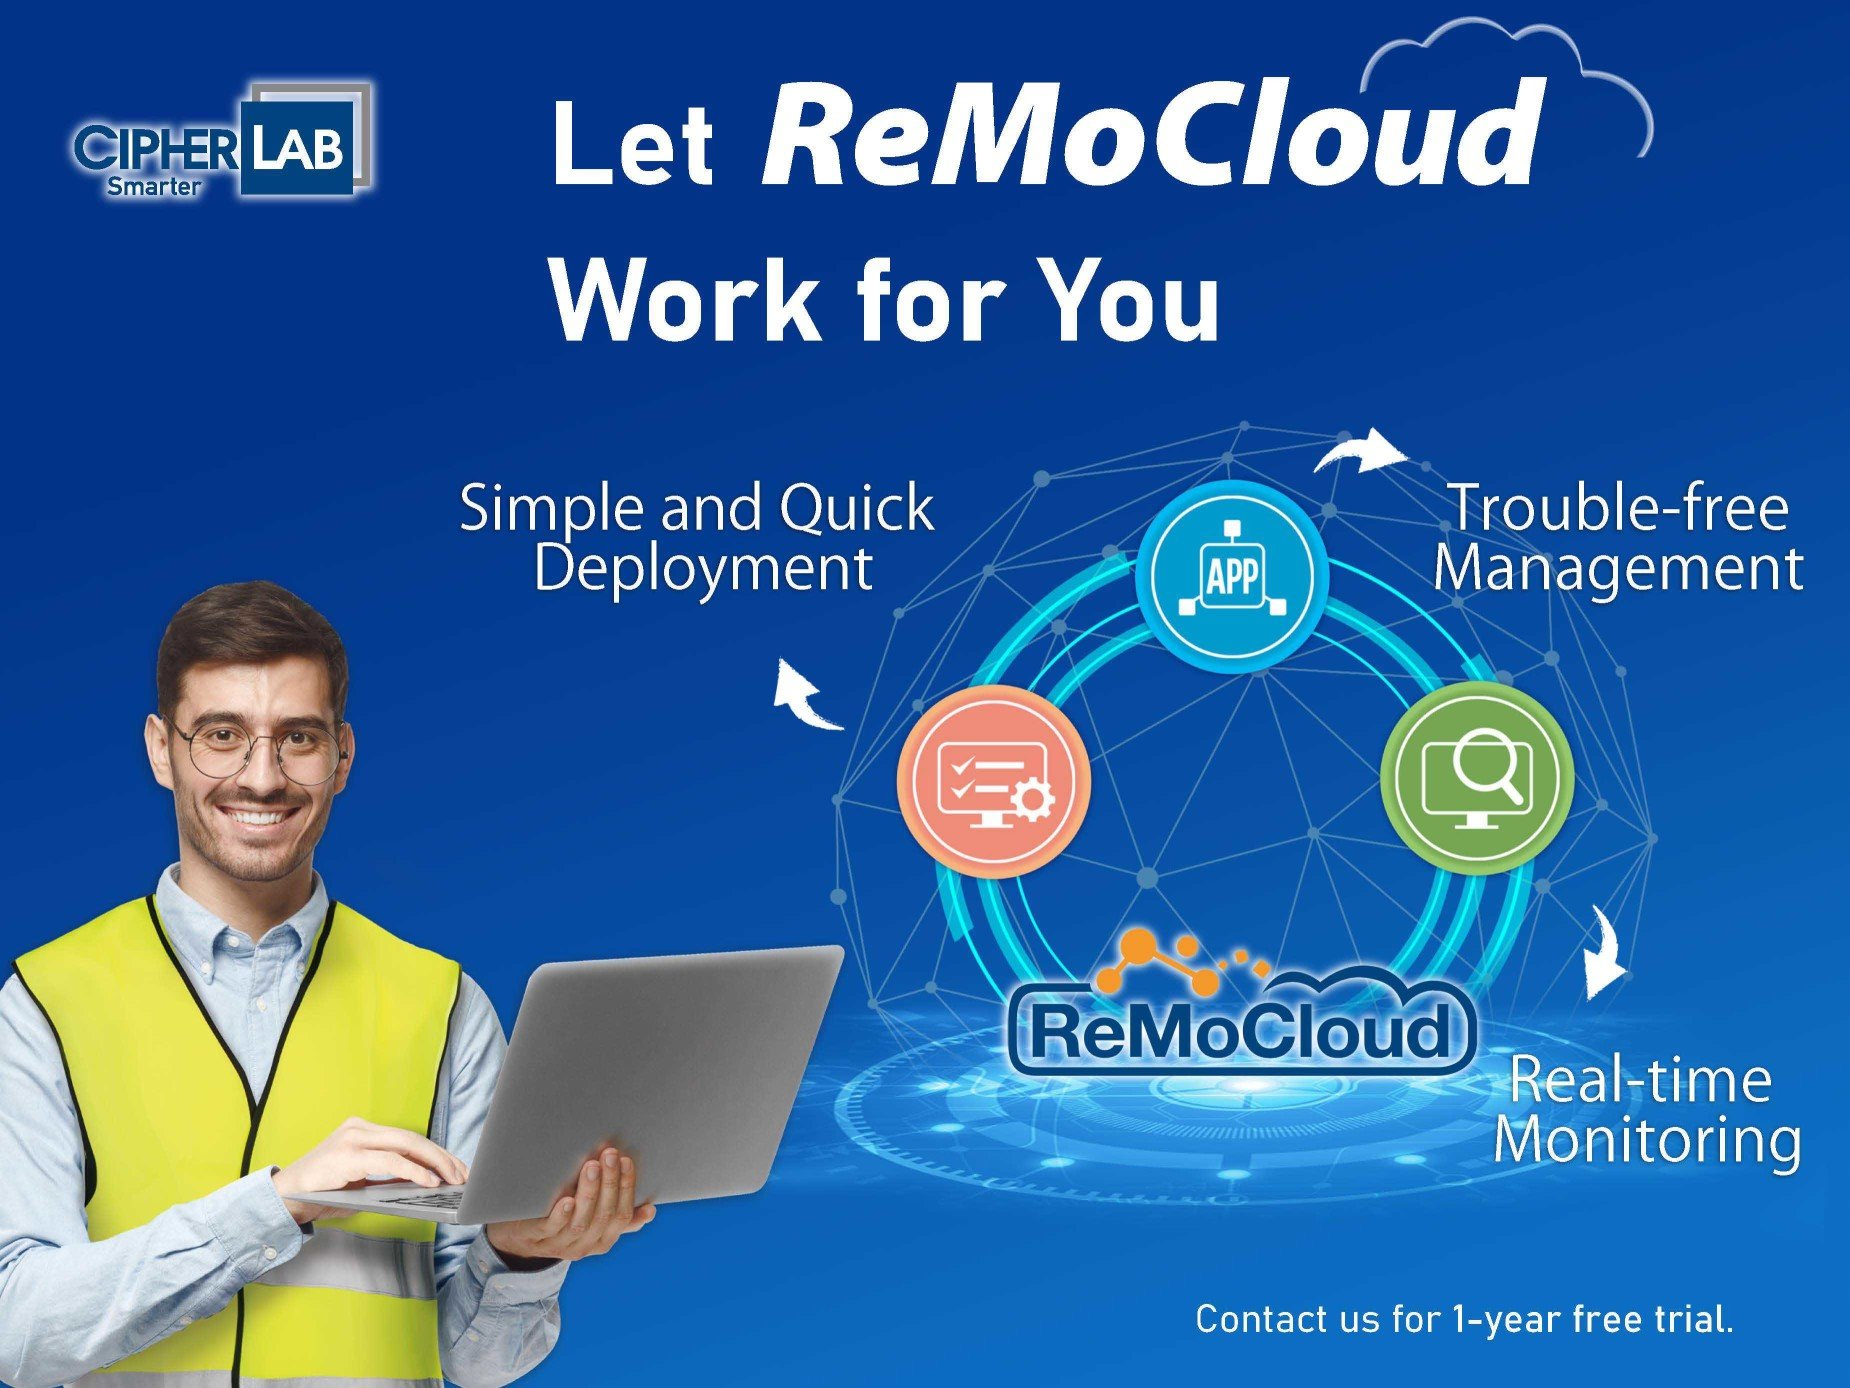 Let ReMoCloud Work for You (Free Trial)